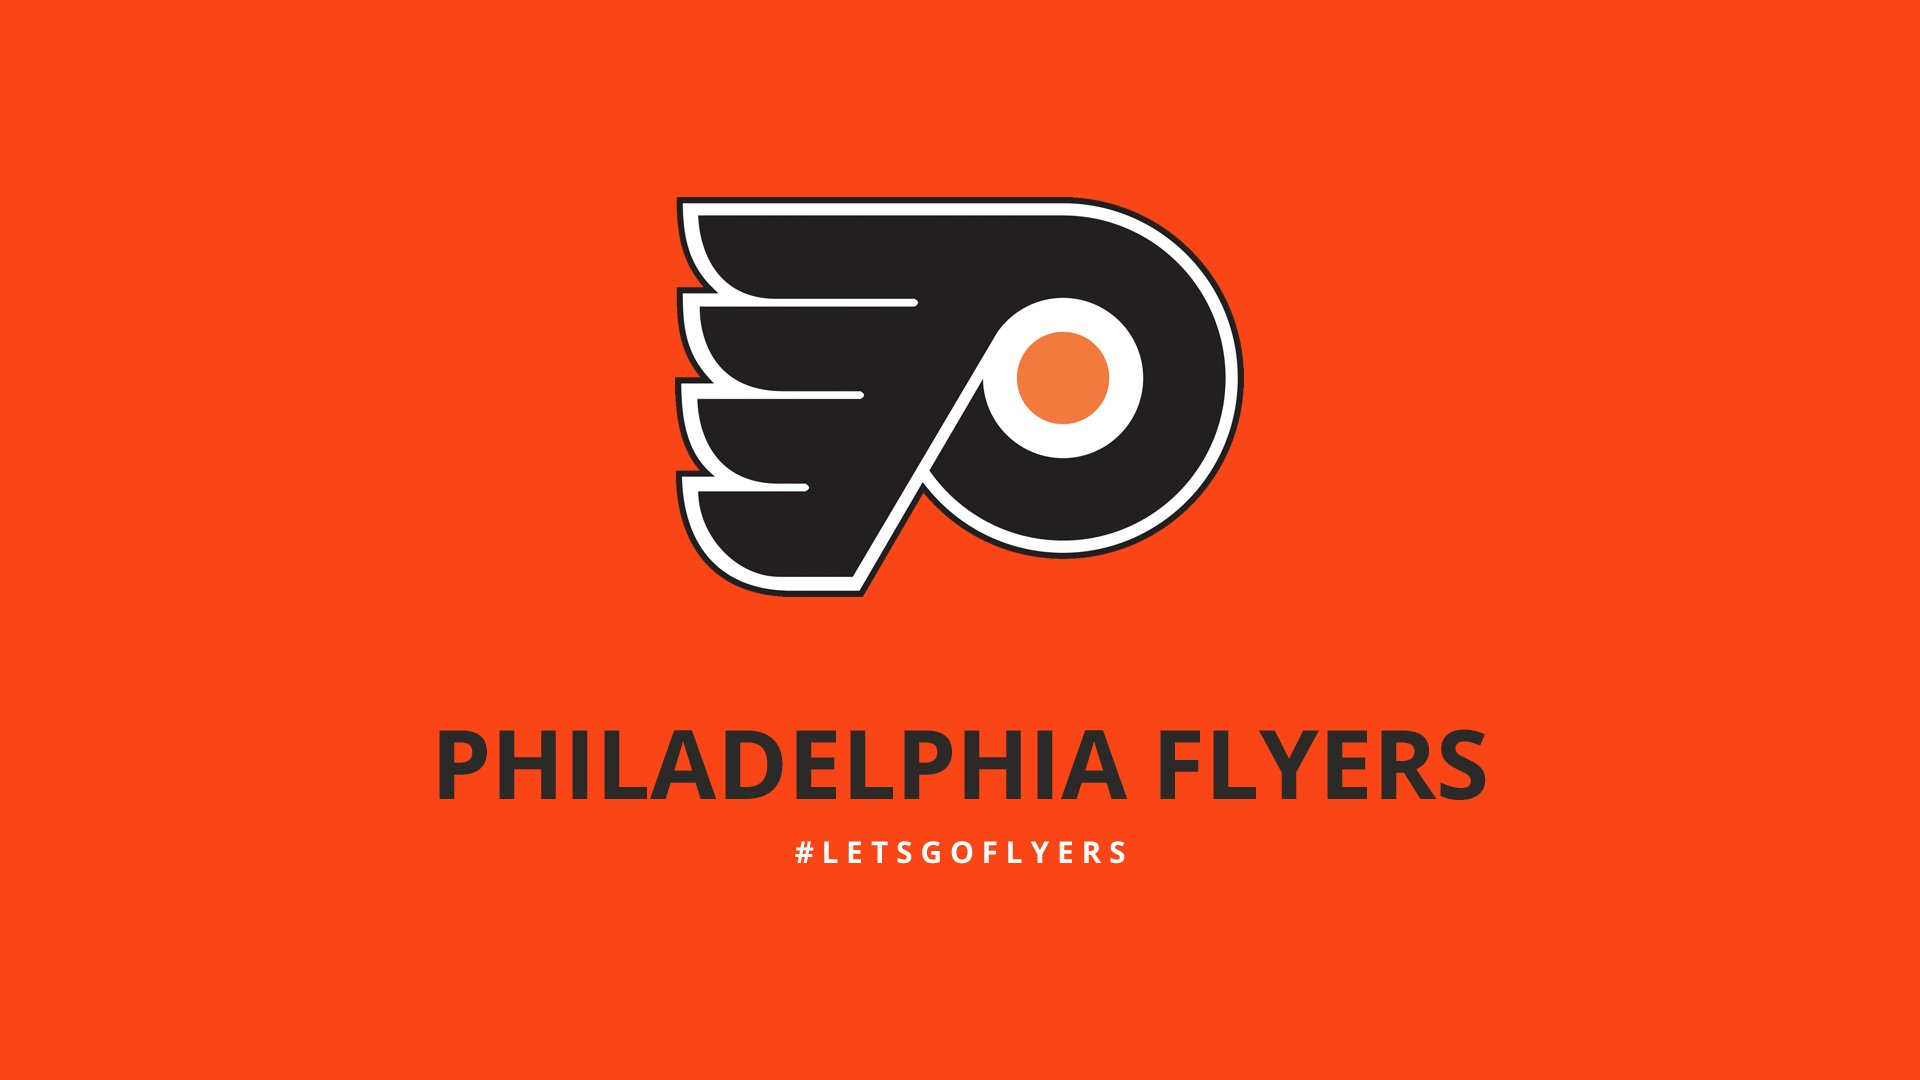 PHILADELPHIA FLYERS nhl hockey 1 wallpaper 1920x1080 344846 1920x1080